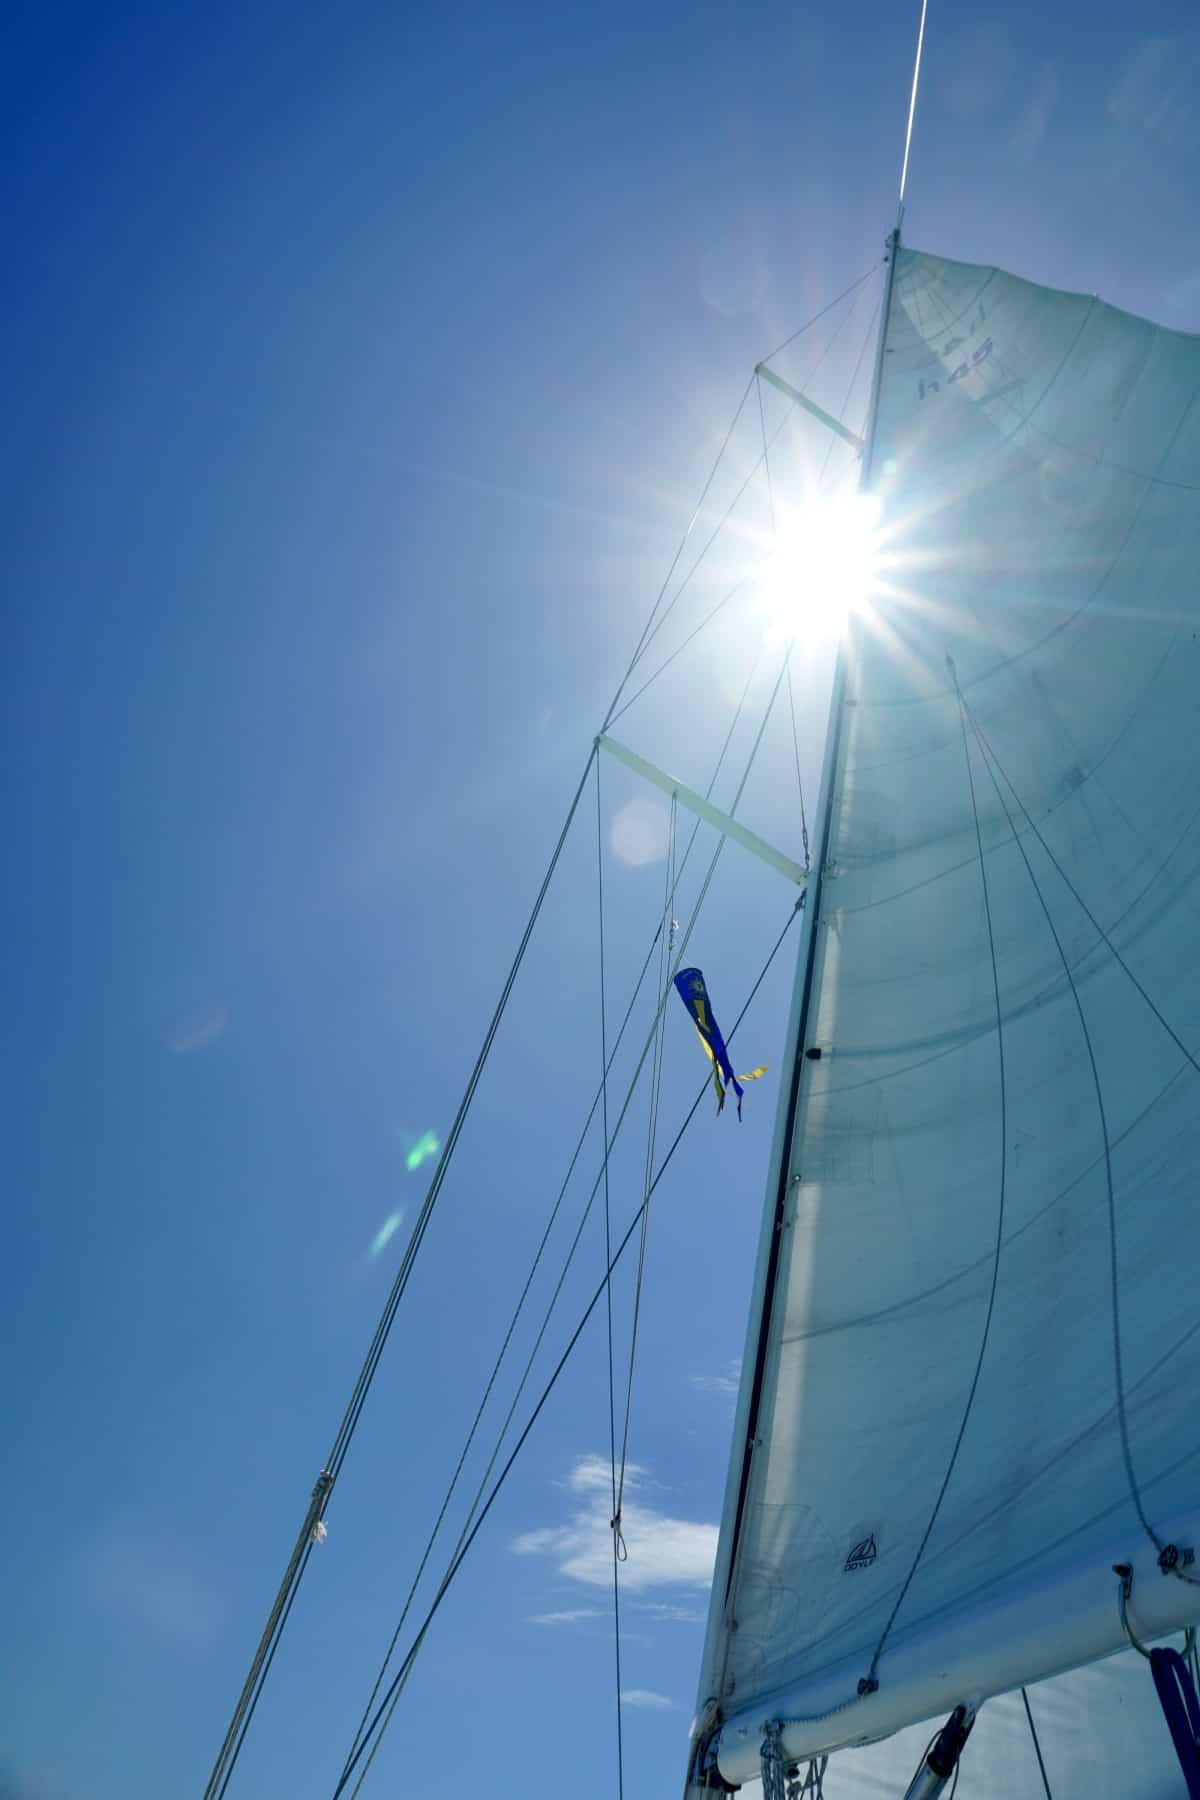 Sun & blue skies aboard the Halia - about my open-water sailing Key West to Dry Tortugas